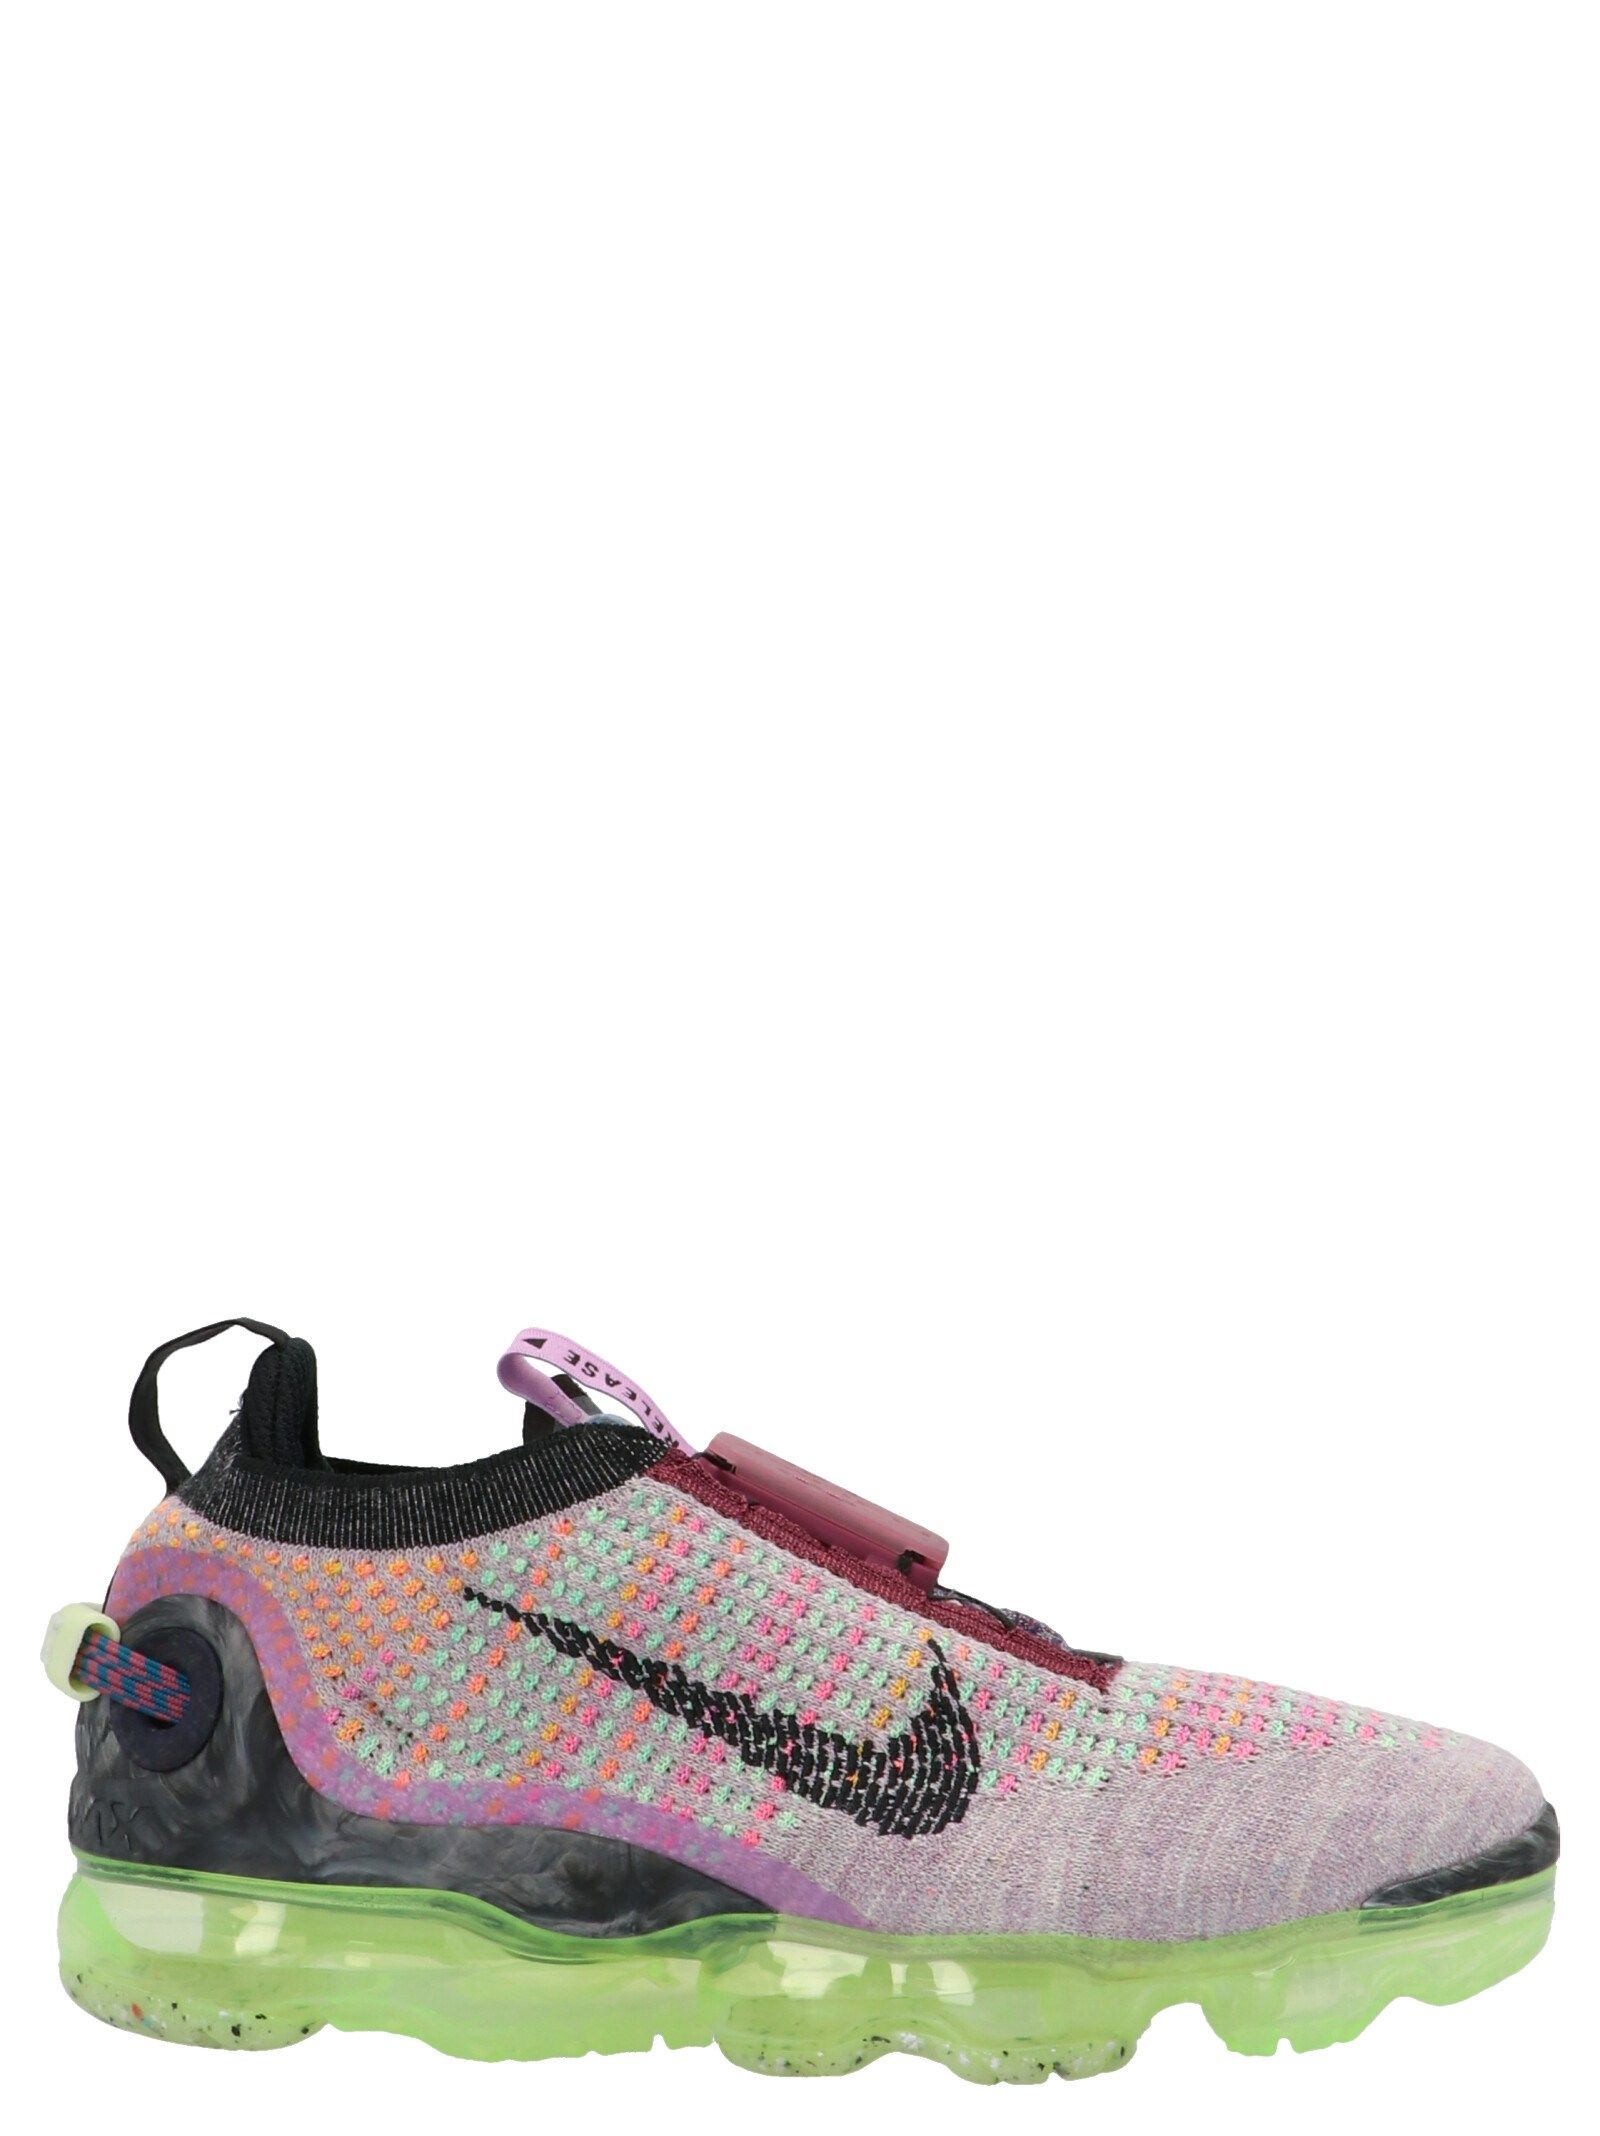 Nike Sneakers NIKE WOMEN'S MULTICOLOR OTHER MATERIALS SNEAKERS